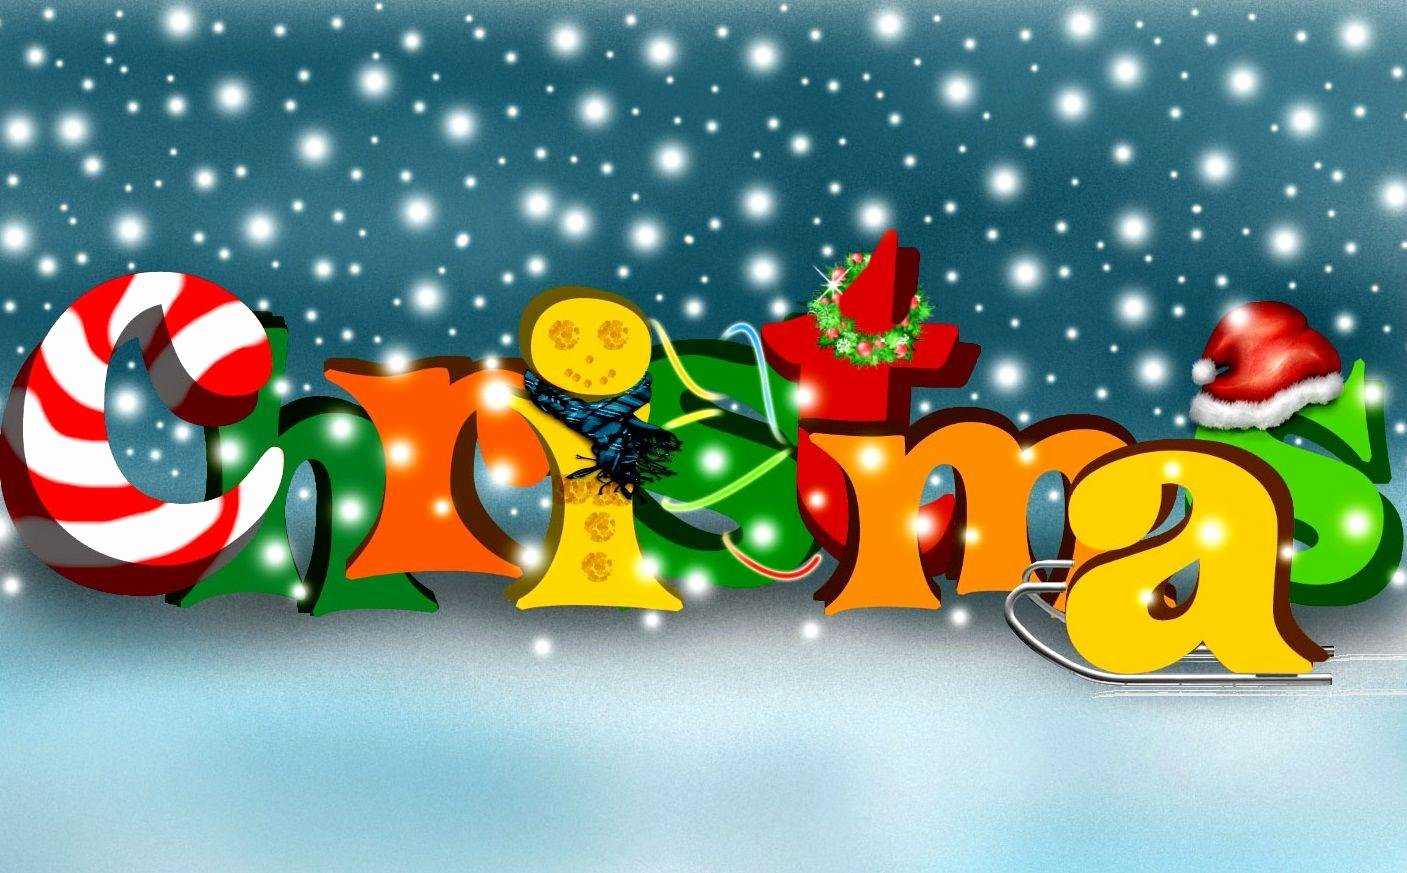 Free Christmas Desktop Wallpaper Fresh Cute Christmas Desktop Backgrounds Wallpaper Cave